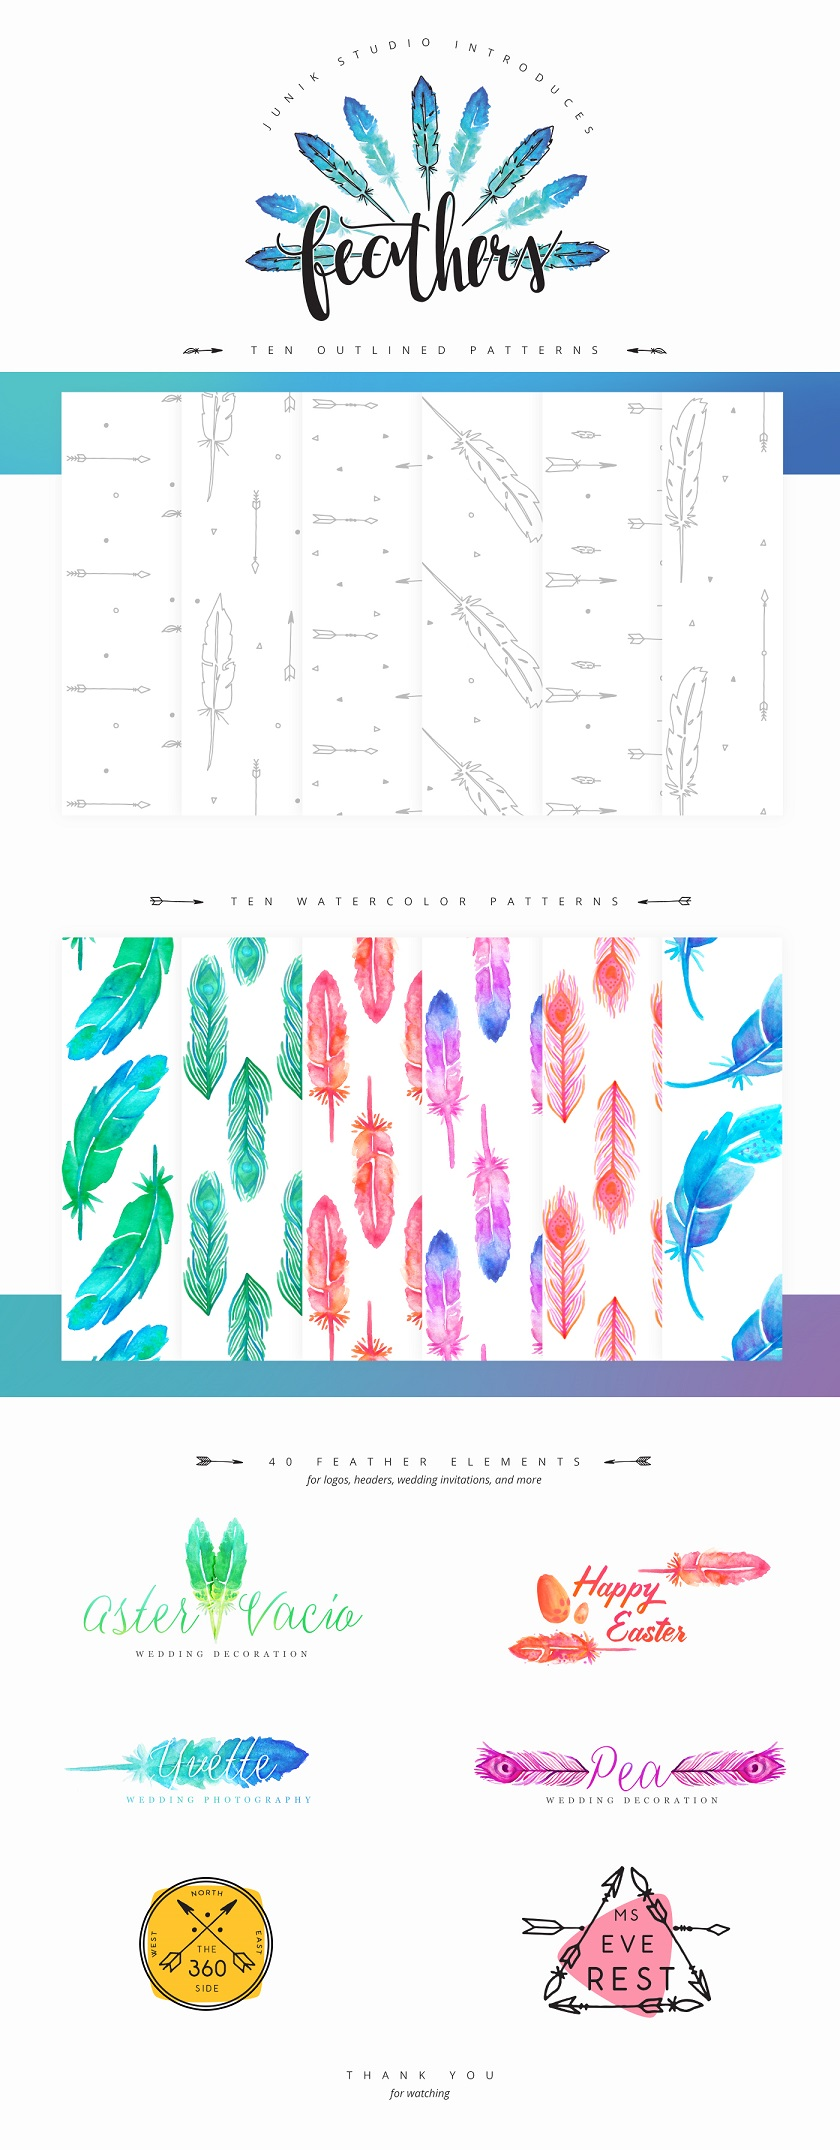 60 Free Watercolor Feather Elements and Patterns